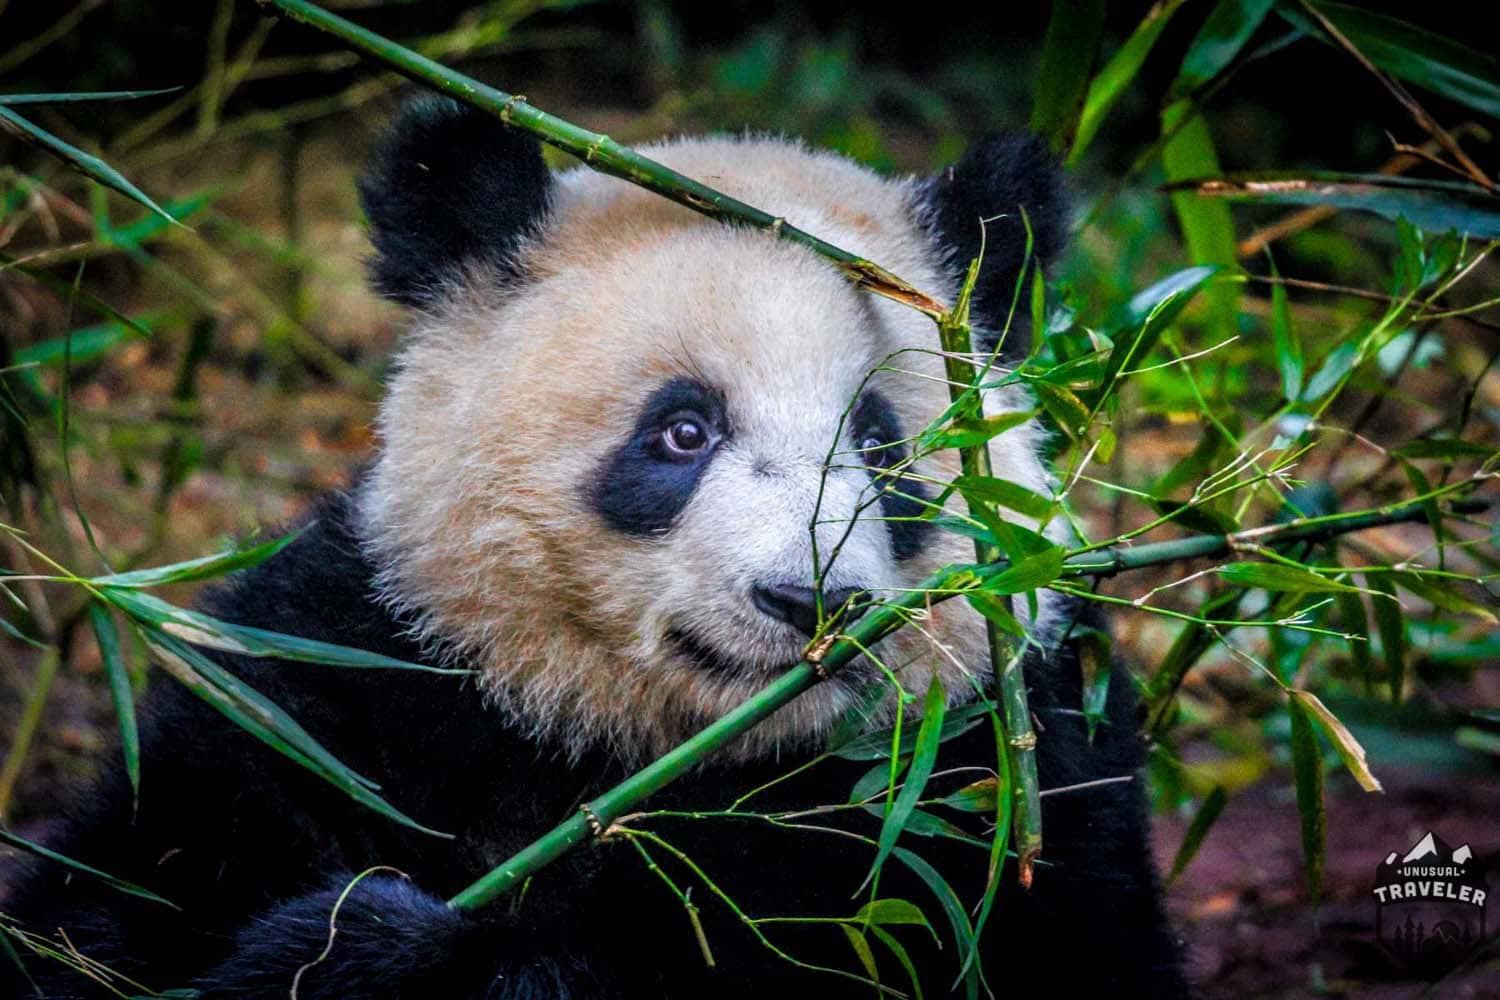 #panda #bamboo #chengdu #china